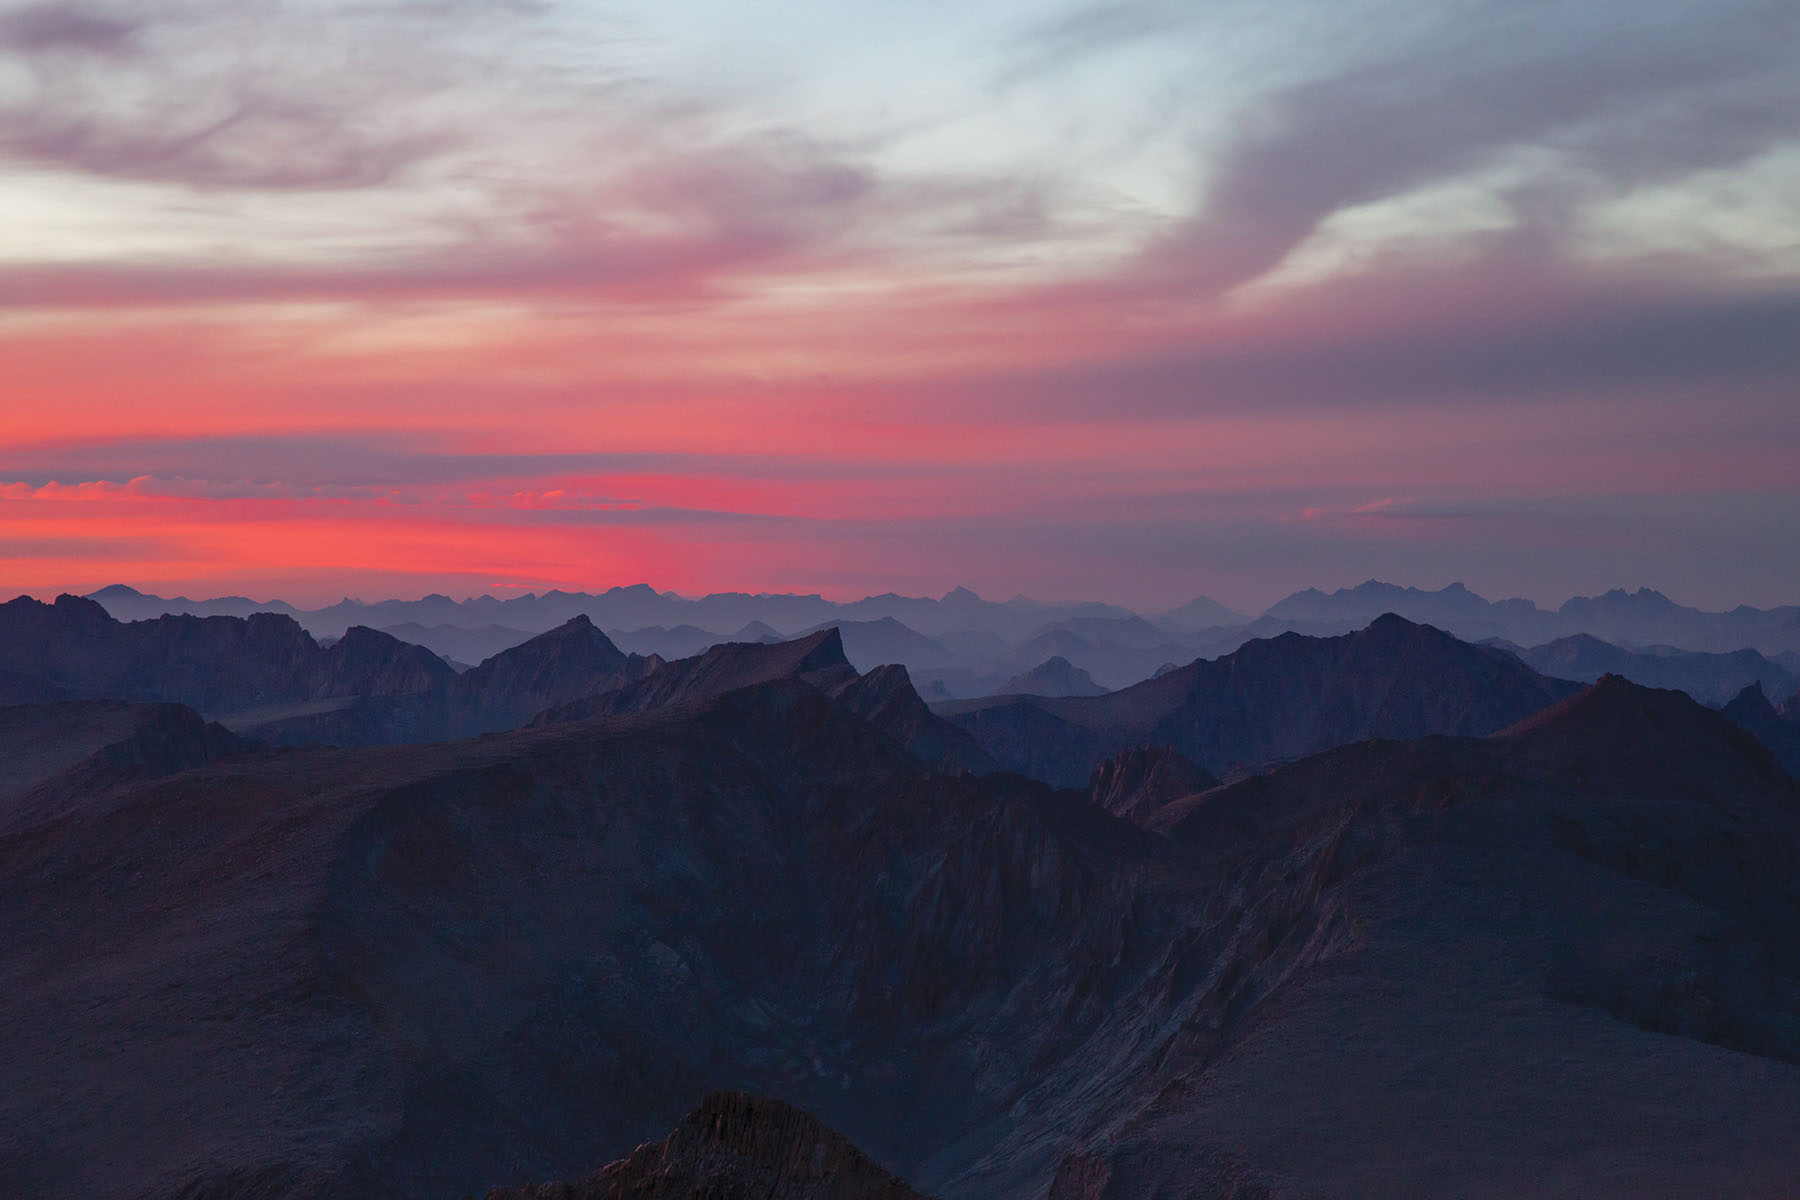 The highest point in the contiguous U.S. features some of the best sunsets on the planet